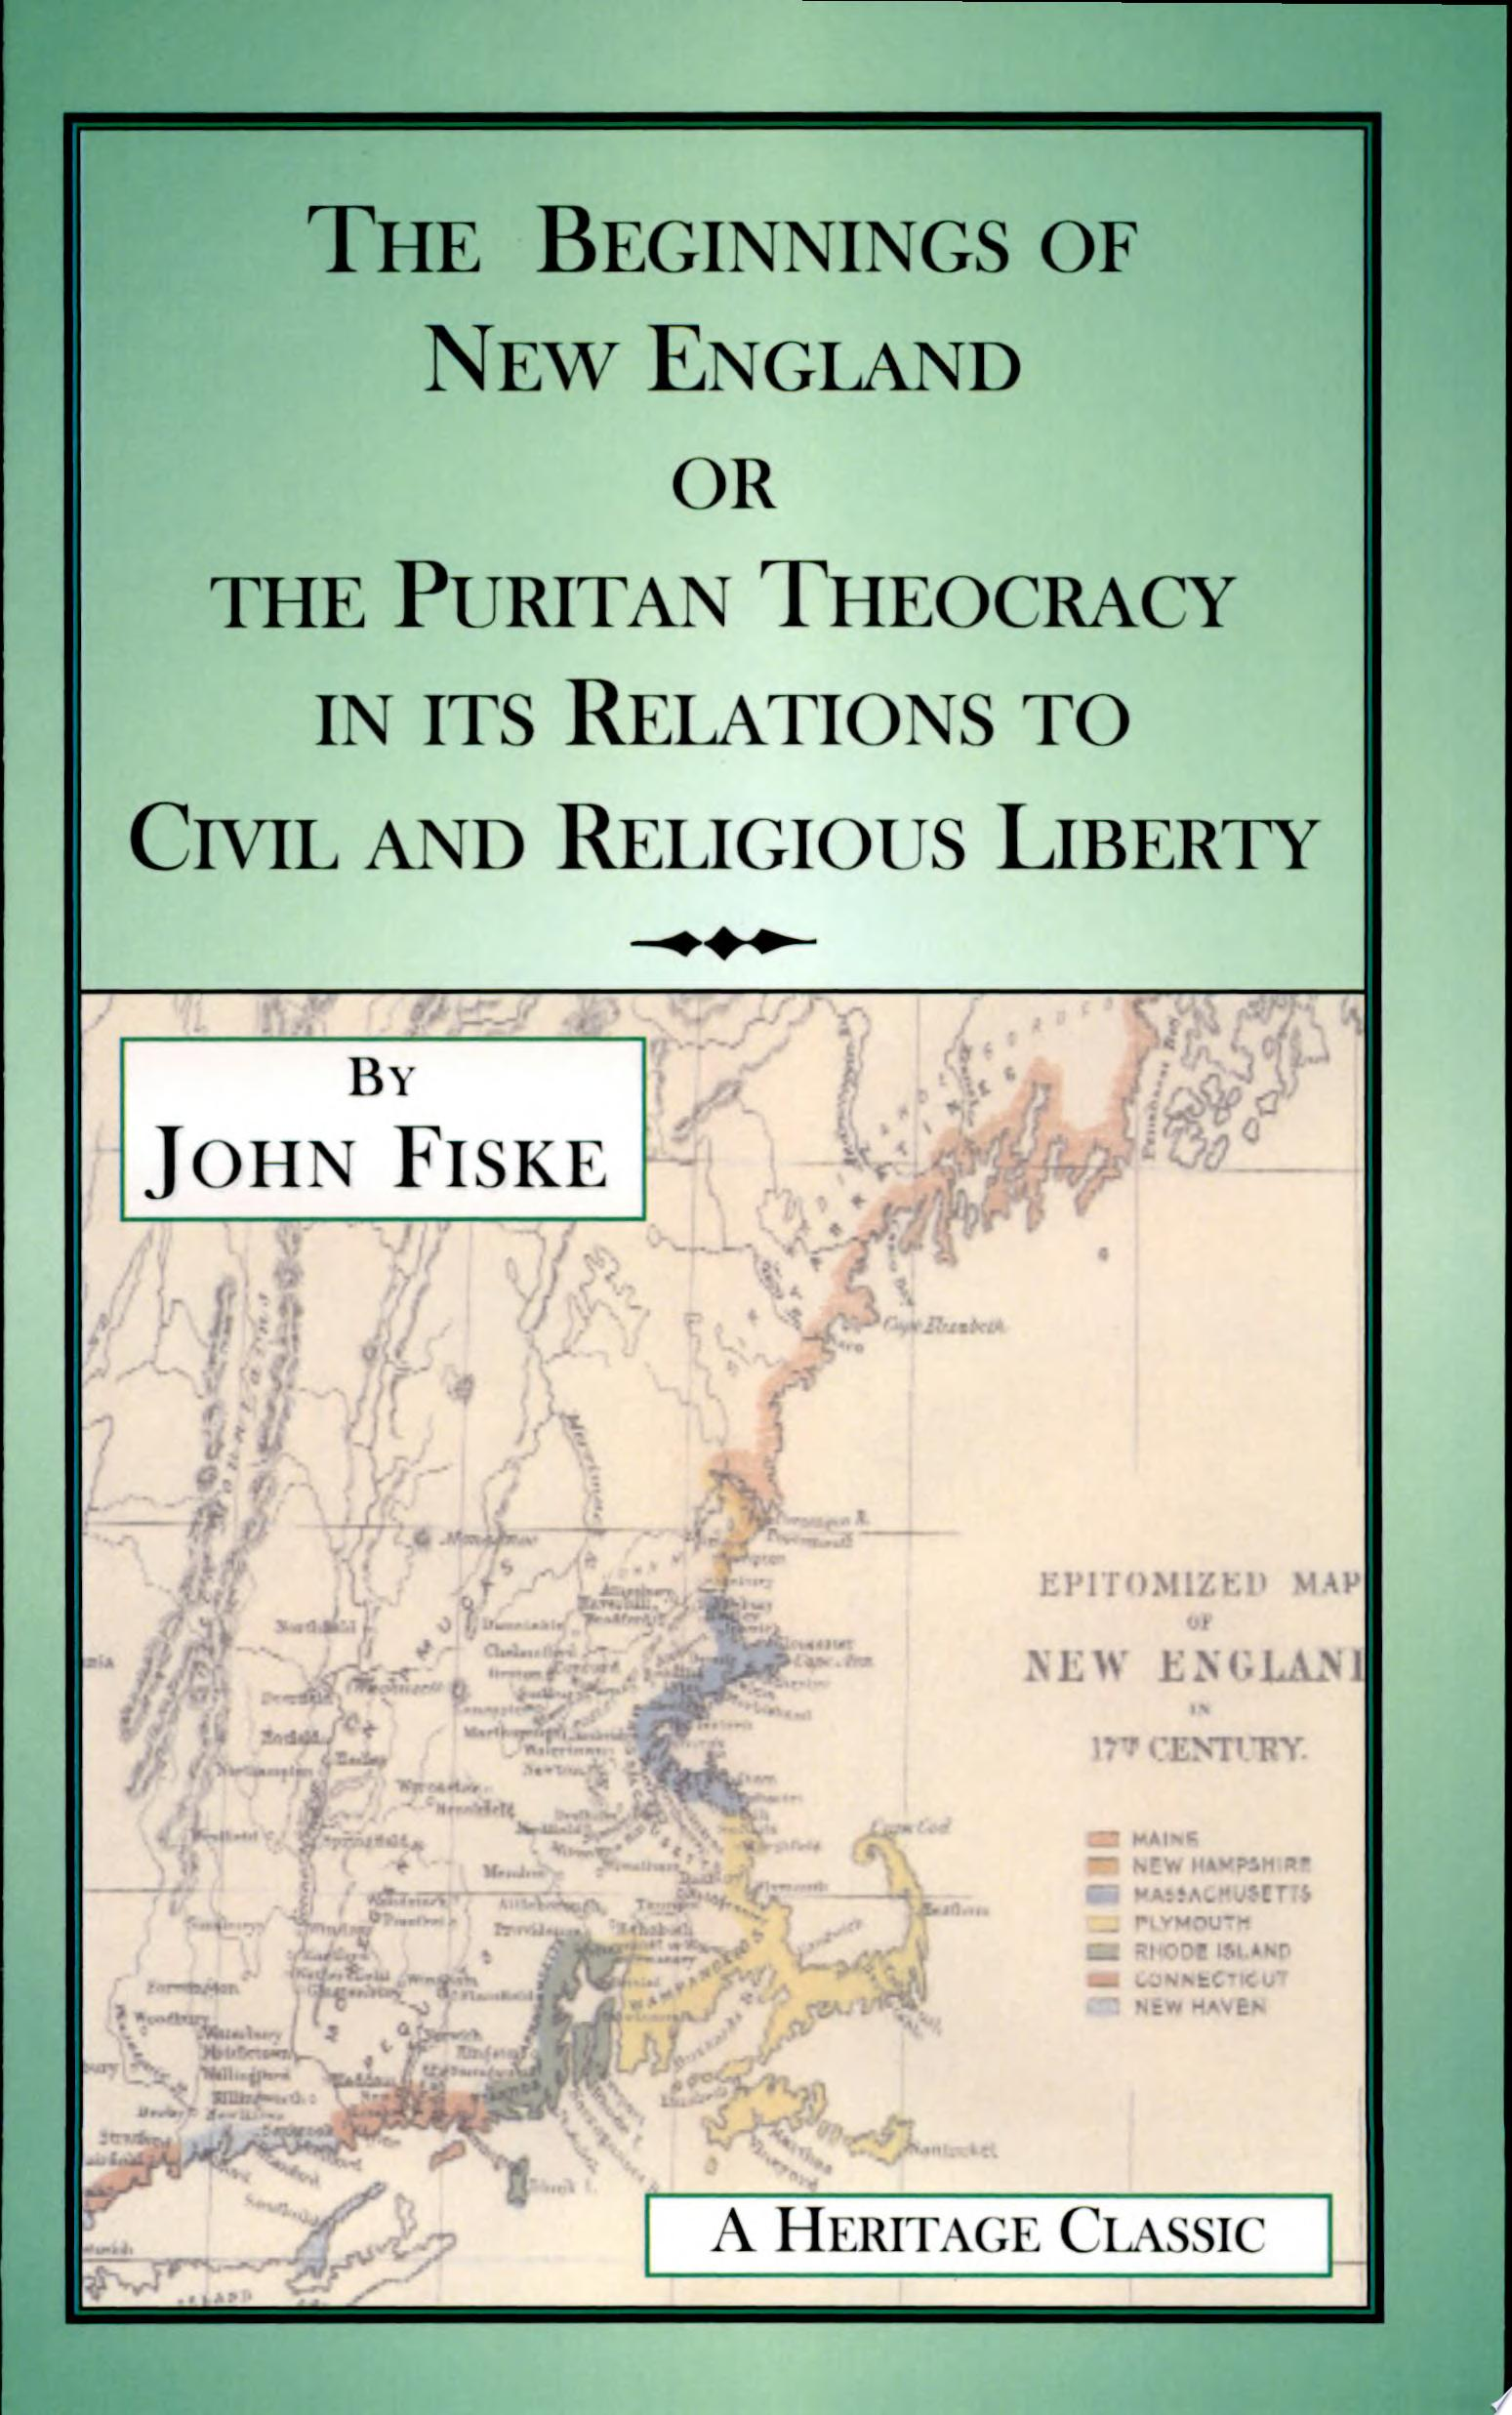 The Beginnings of New England Or the Puritan Theocracy in Its Relations to Civil and Religious Liberty